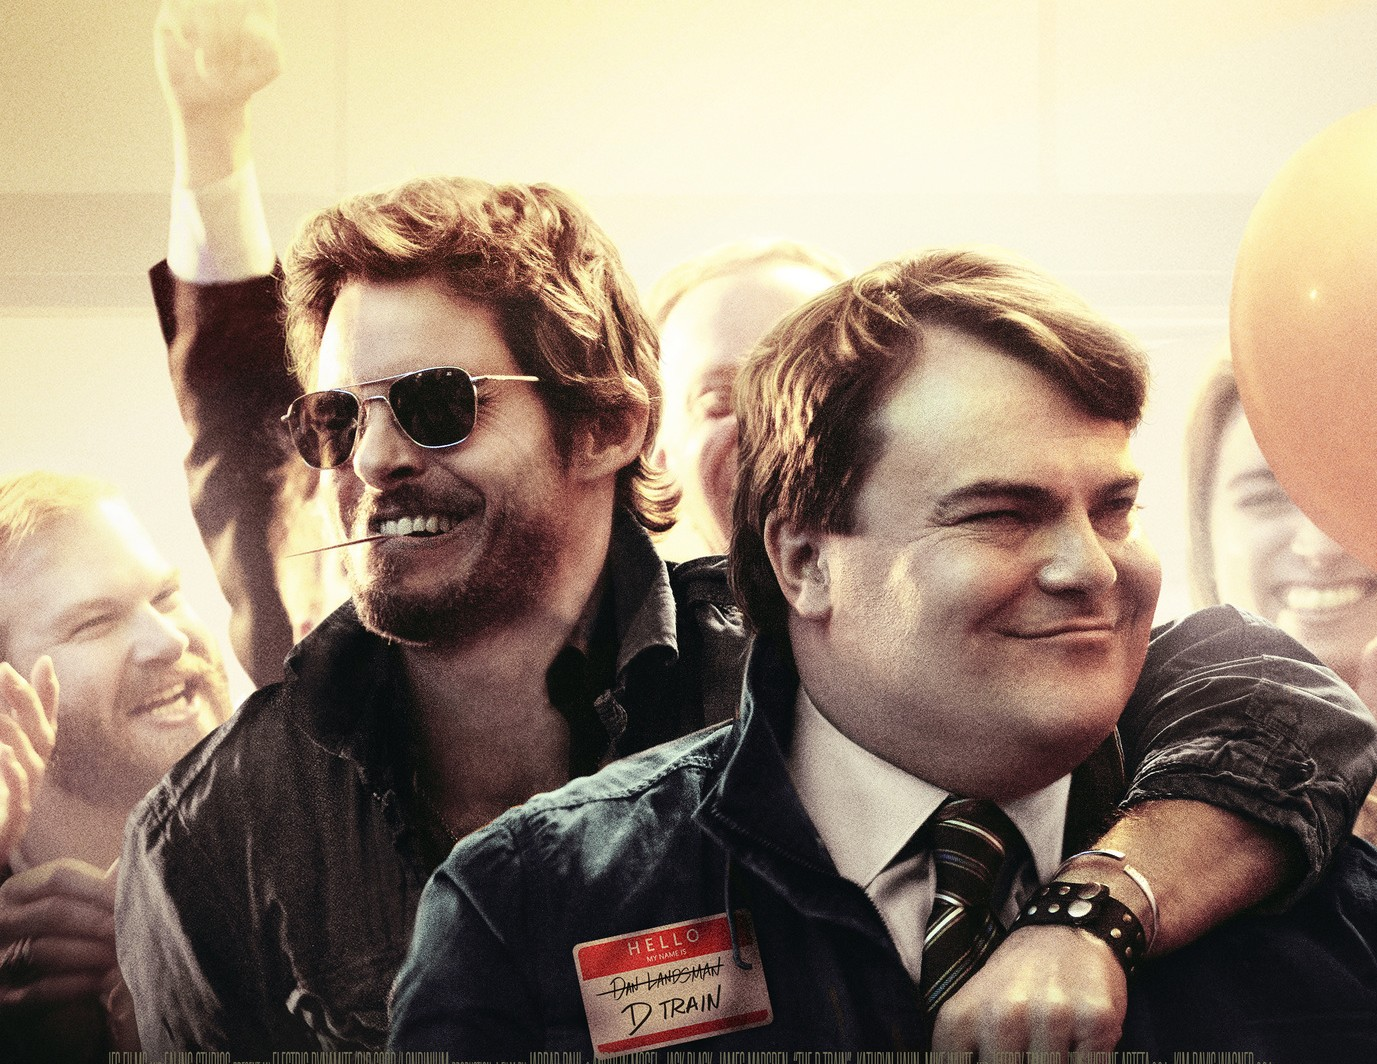 See Jack Black and James Marsden in 'The D Train' Trailer